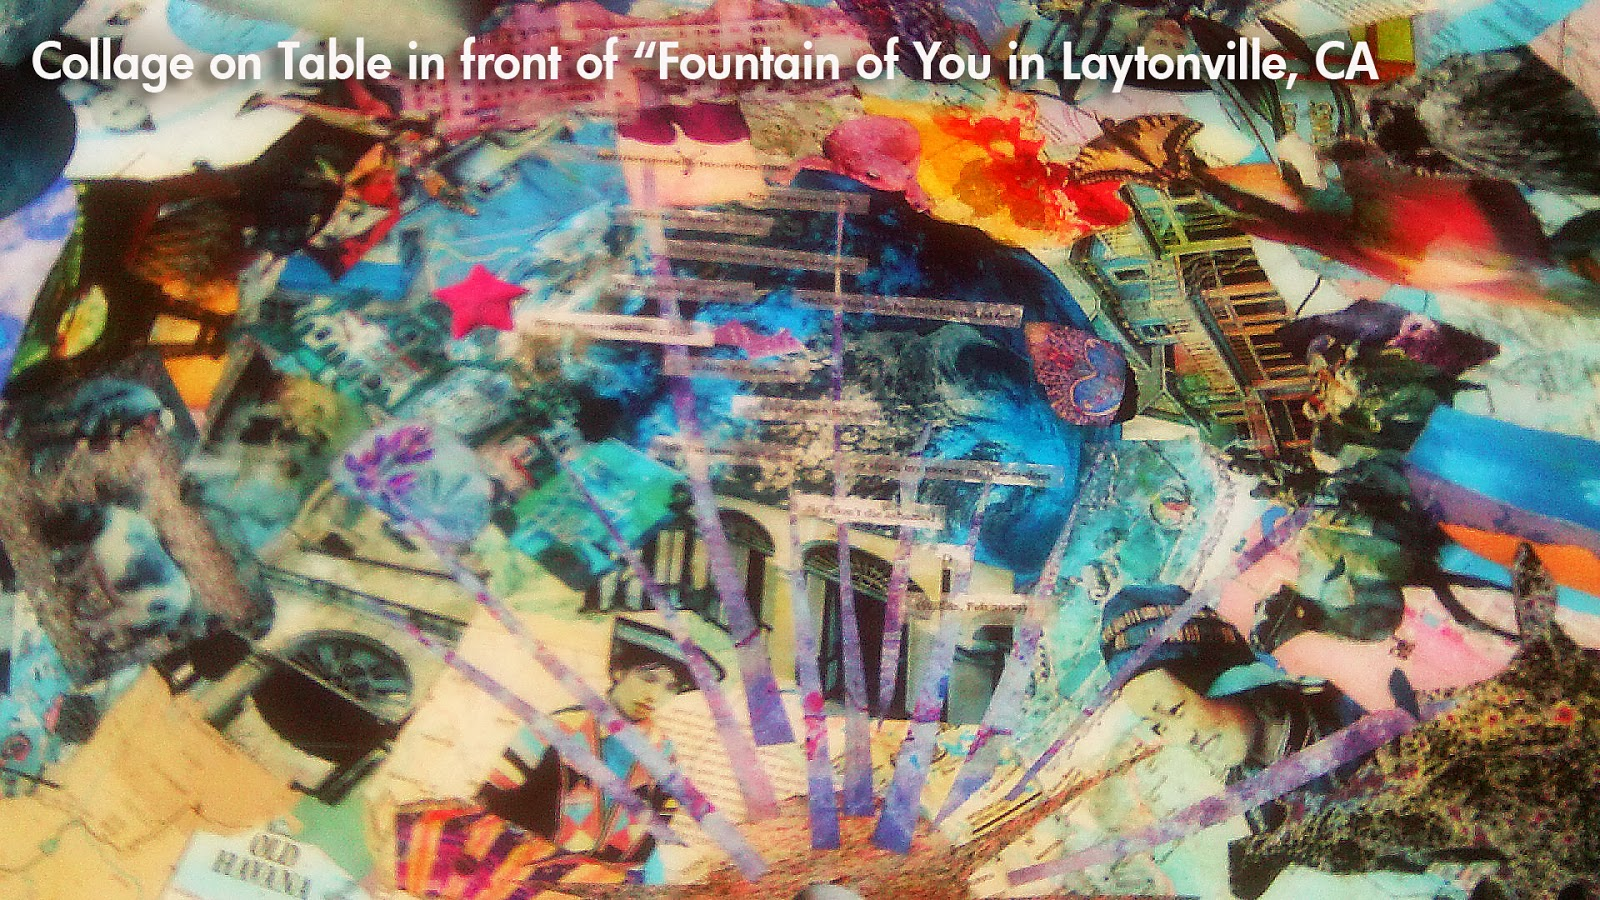 Most Inspiring   Wallpaper Horse Collage - collage-on-table-in-front-of-fountain-of-you-laytonville-ca-vandergreg  Perfect Image Reference_182071.jpg